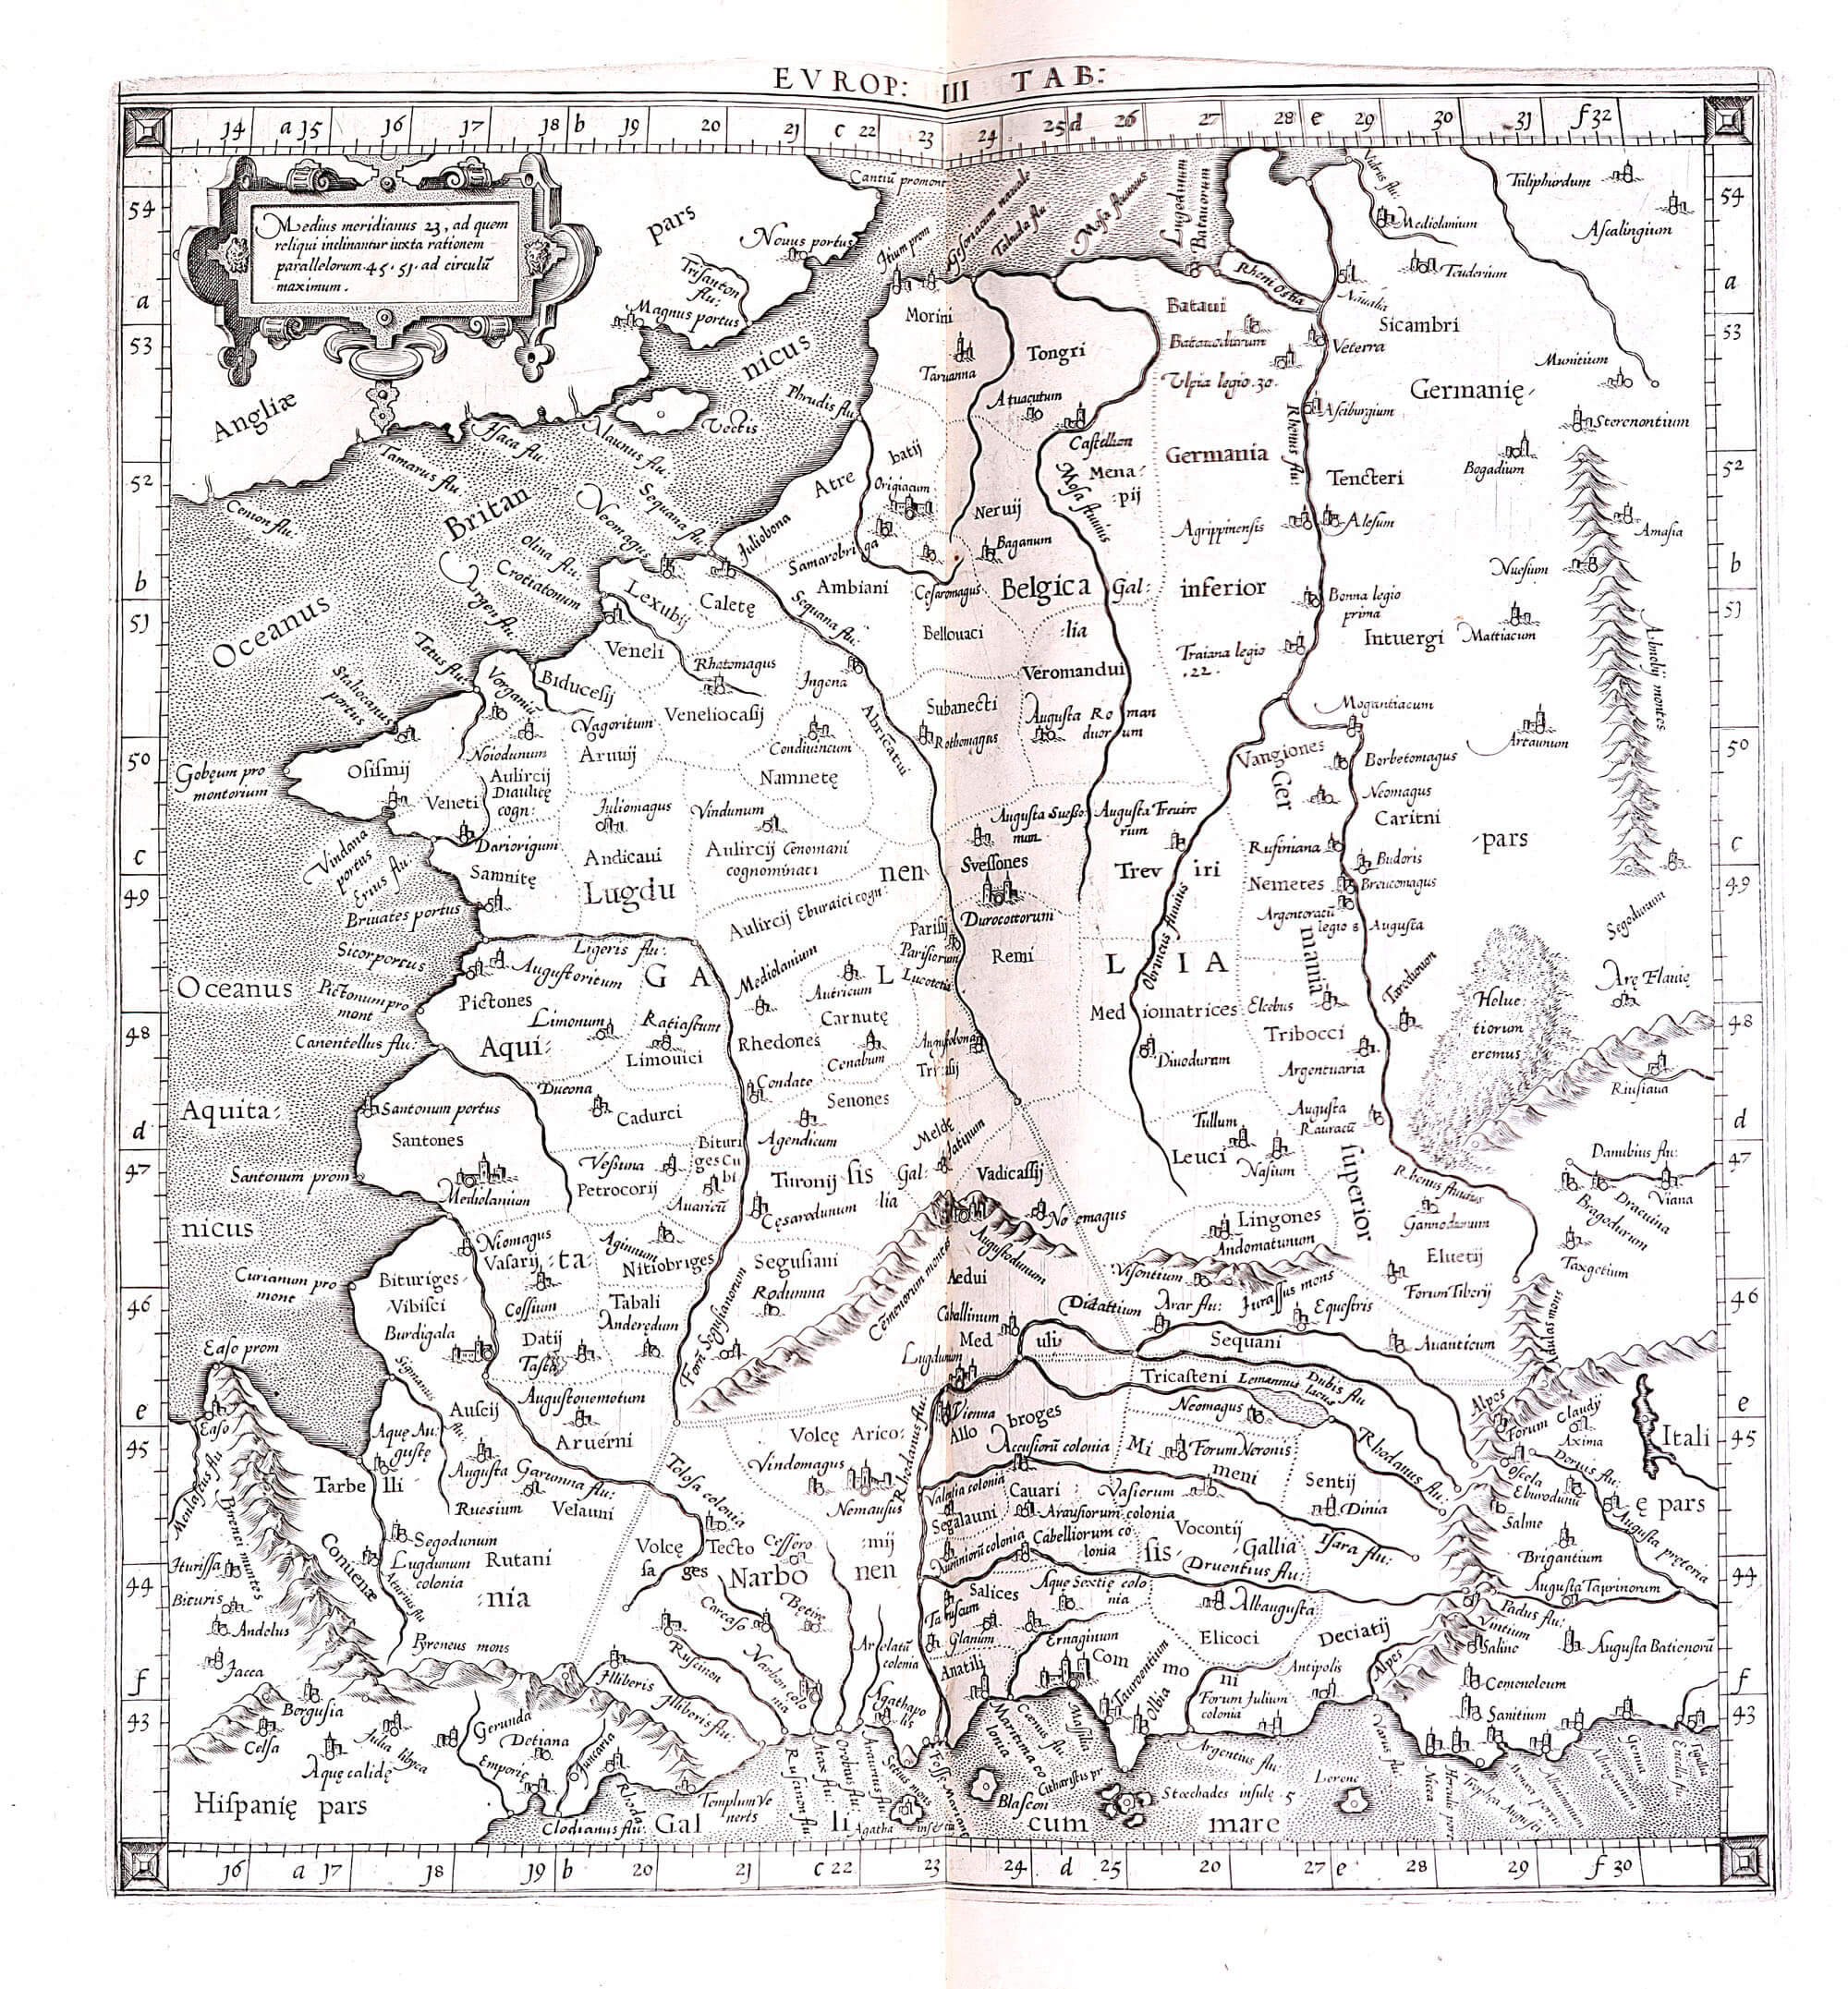 World atlas c ptolomy peter bertius 1619 l brown collection a 2 19 04 france gumiabroncs Choice Image